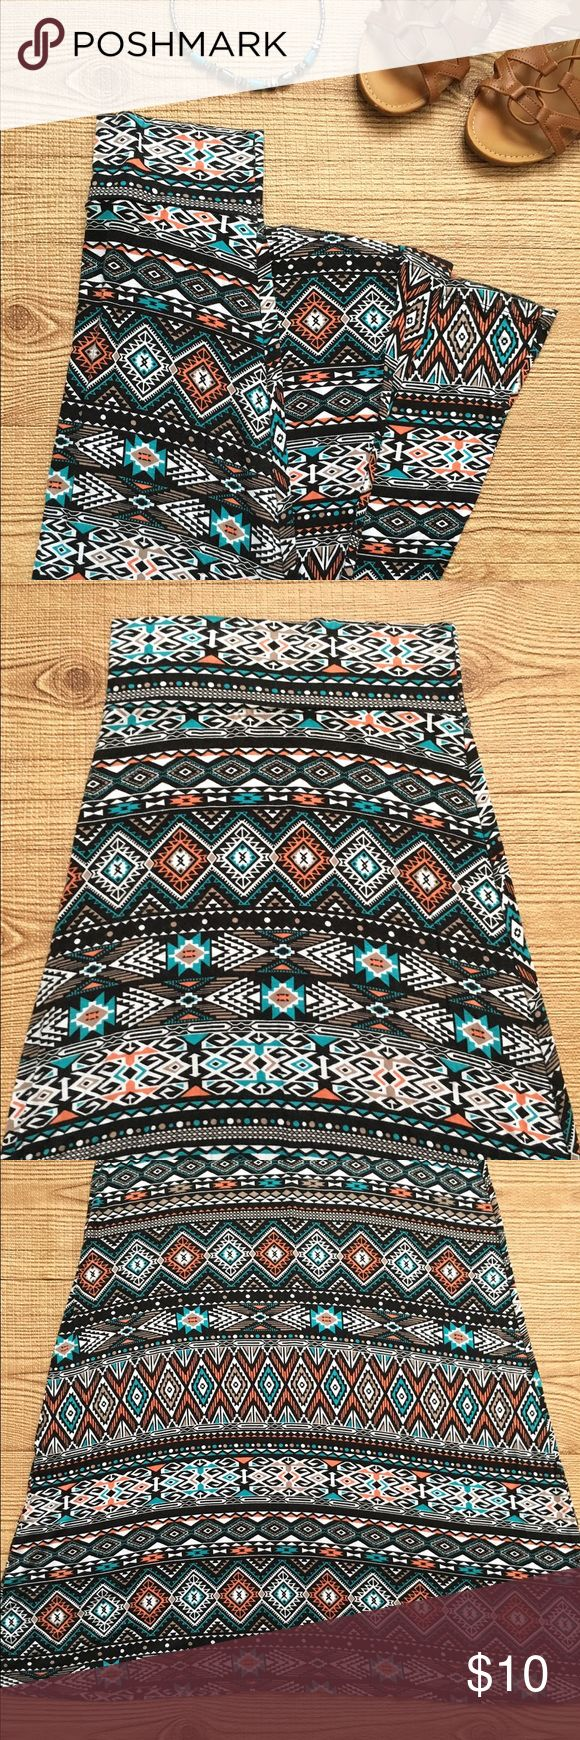 Tribal Maxi Skirt Lightweight tshirt material tribal maxi skirt. Size M, but in reality is a size Small. Limonata Skirts Maxi